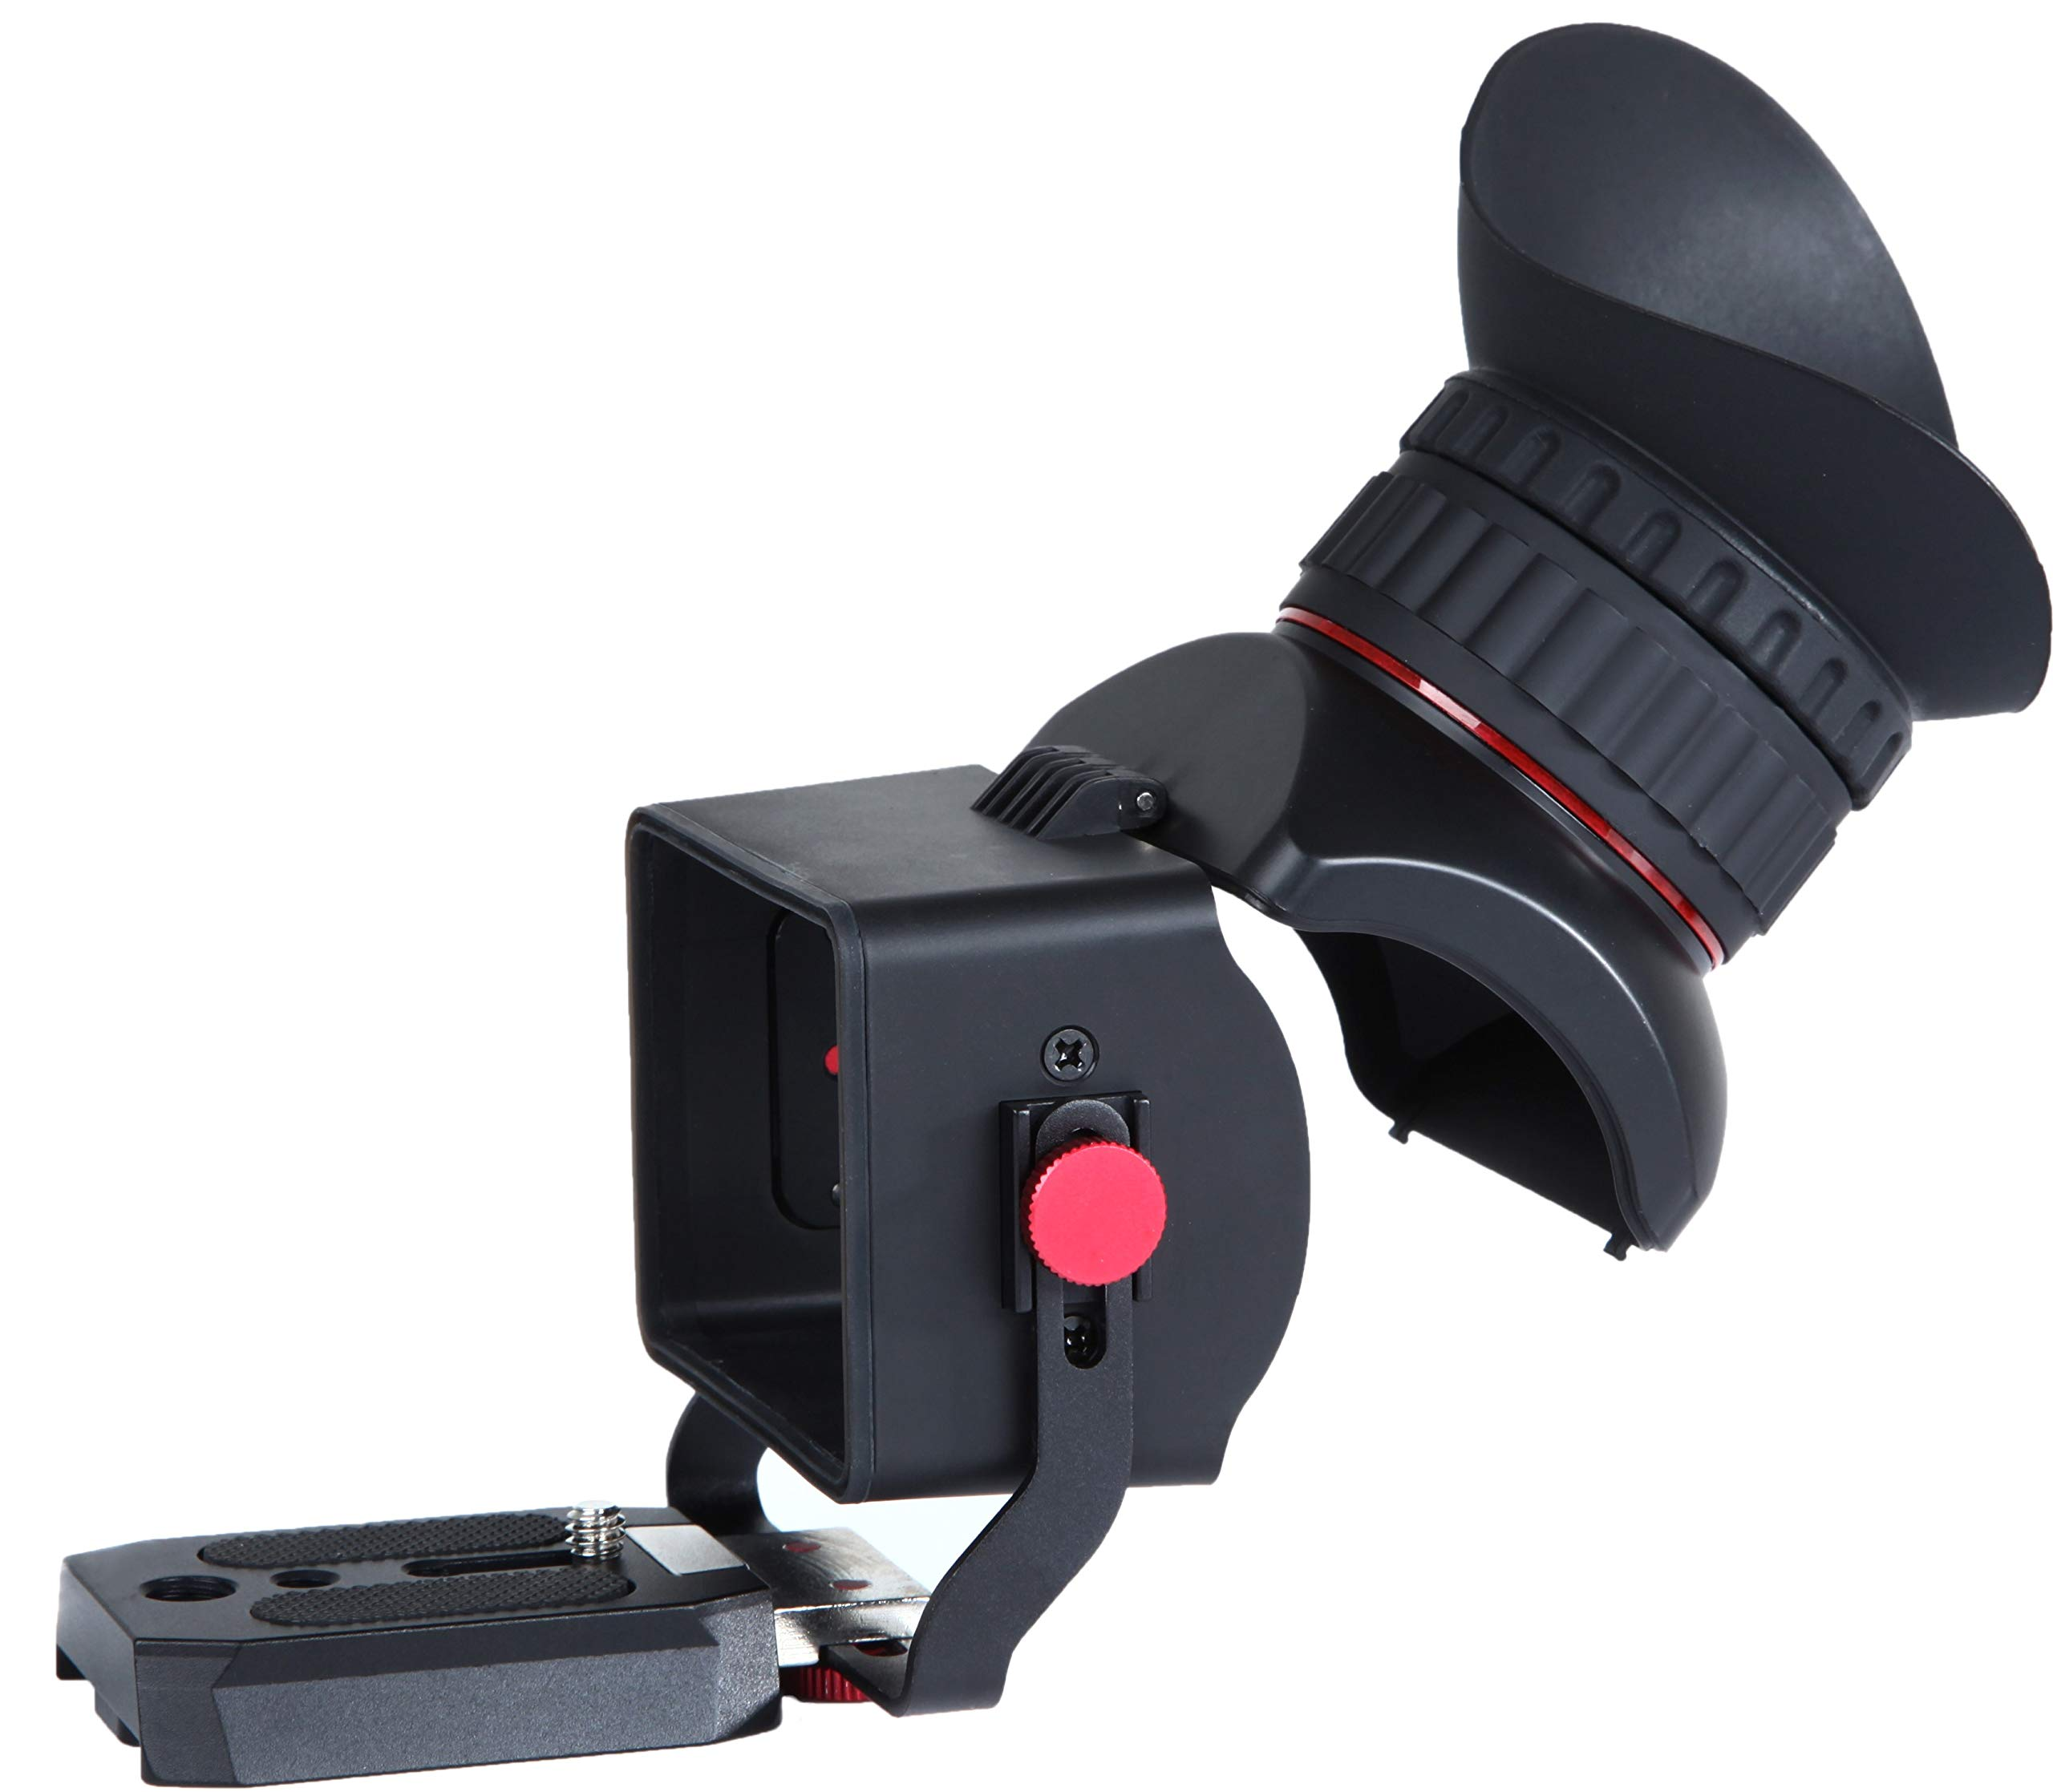 Movo VF40-PRO Universal 3X Magnifying LCD Video Viewfinder with Flip-Up Eyepiece and Adjustable Diopter - for 3-3.2'' Screens - Compatible with Canon EOS, Nikon, Sony Alpha, Olympus and Pentax DSLR